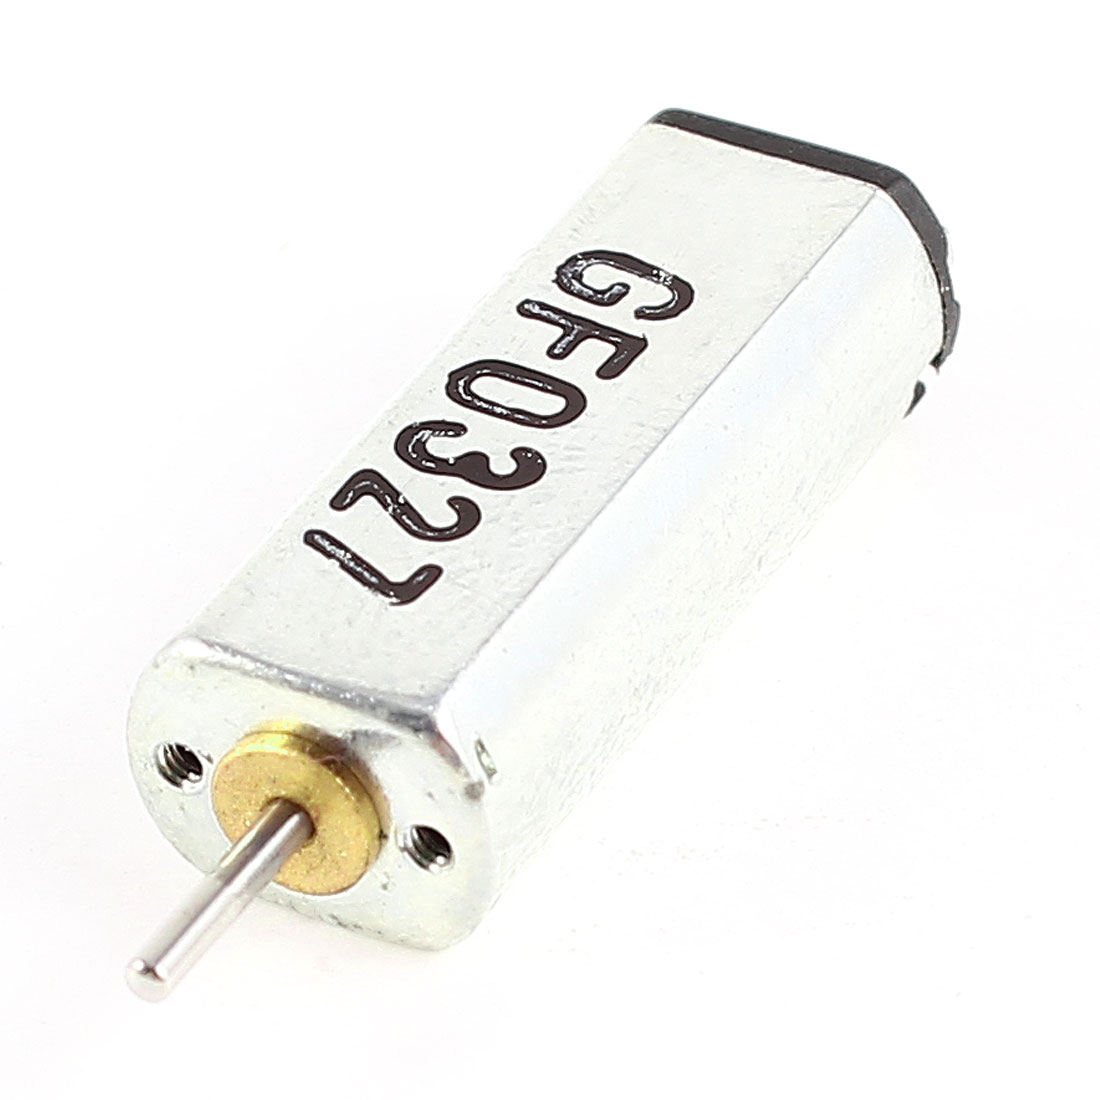 RC Helicopter Aircraft 1mm Diameter Axle Metal Shell Mini Motor DC 4.7V 19900RPM